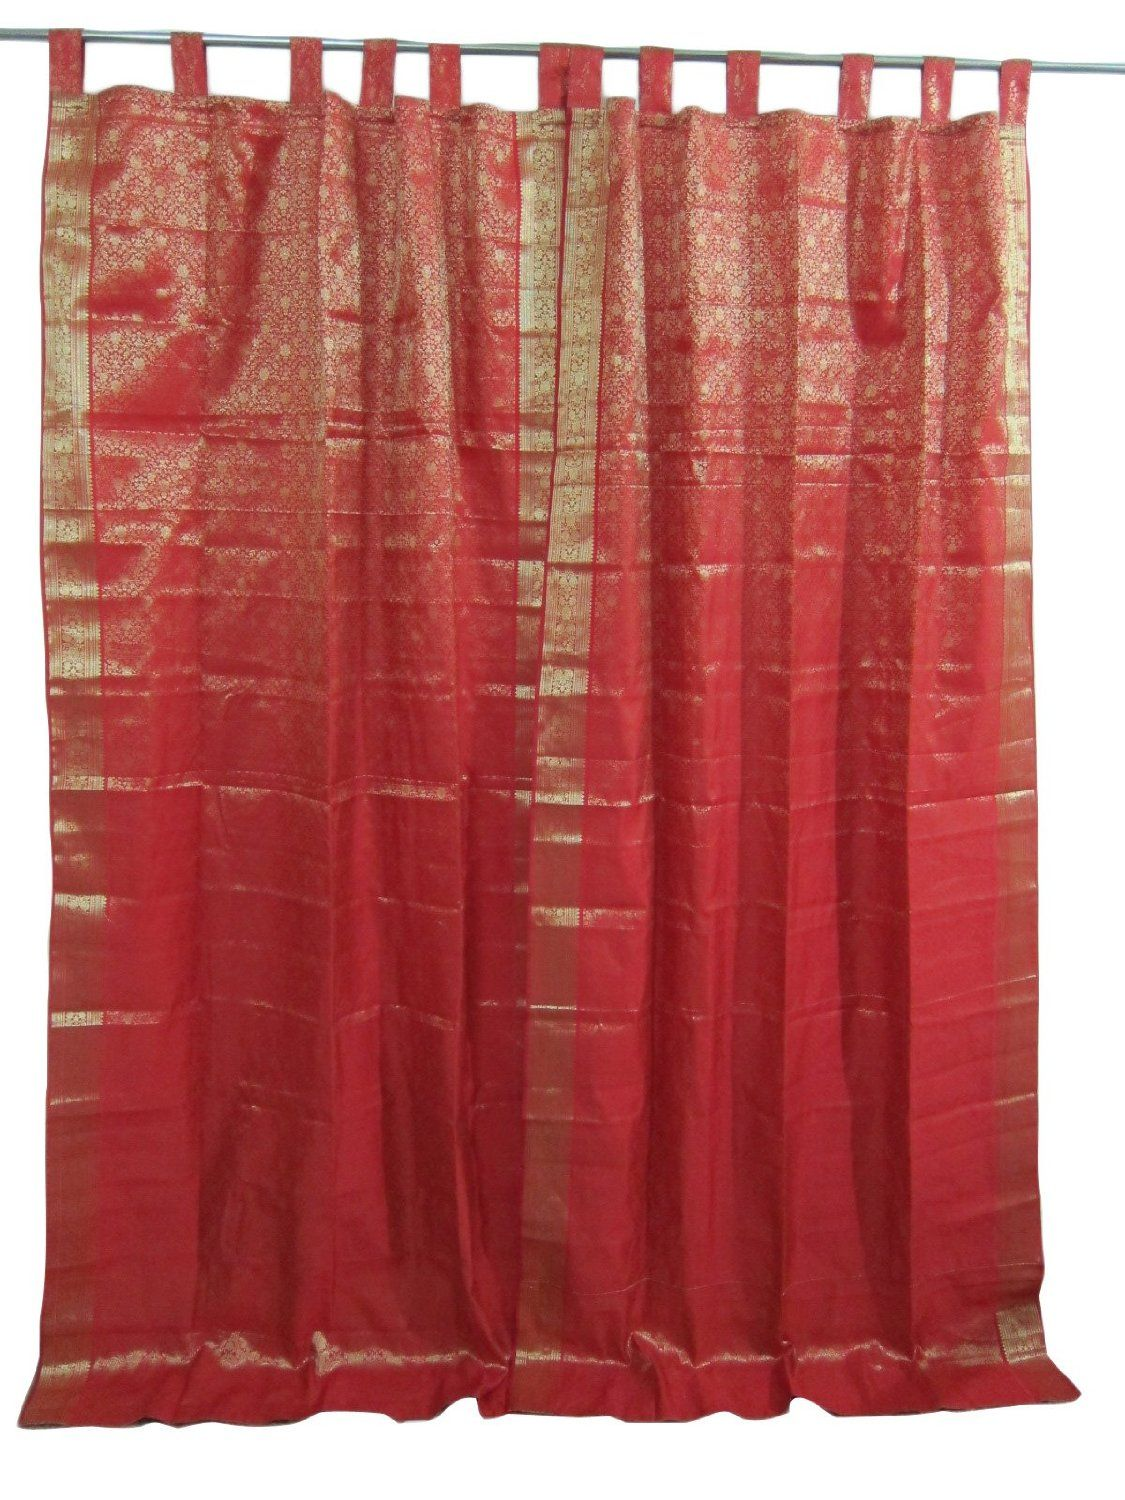 Tab Top Curtains Amazon Amazon 2 Red Gold India Curtains Brocade Silk Sari Drapes